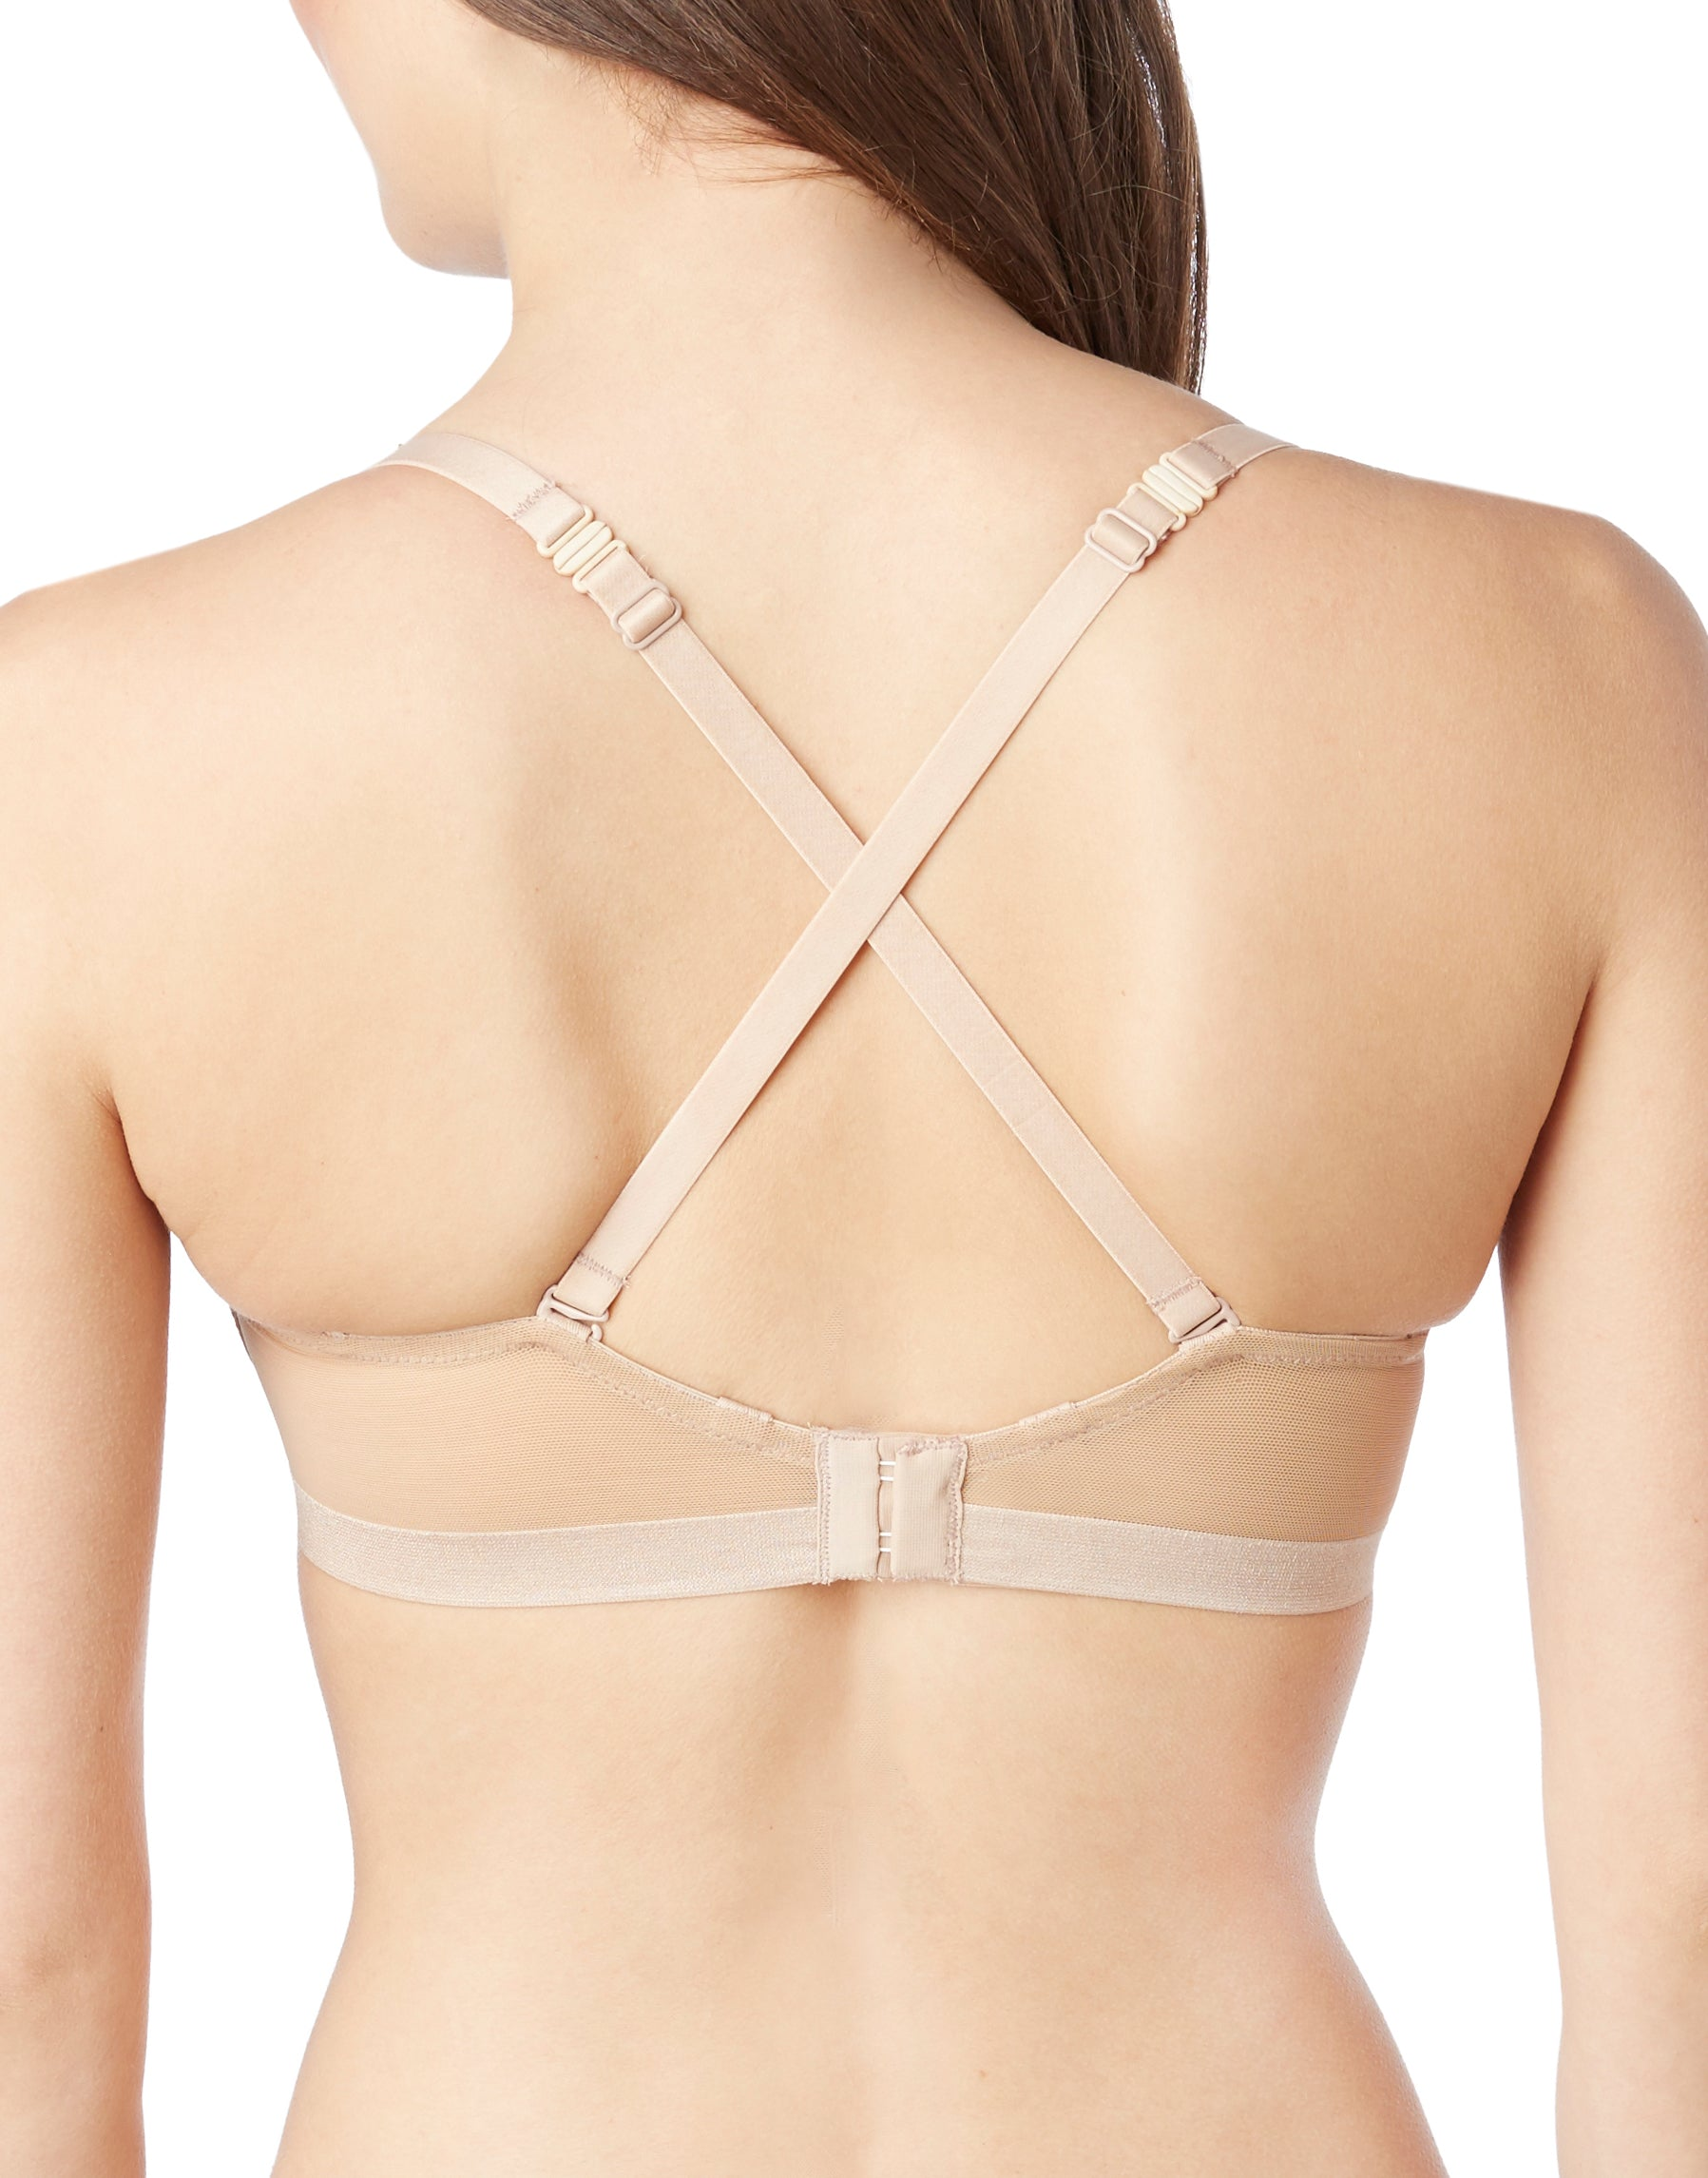 Natural Back Le Mystere Women's Infinite Underwire Convertible T-Shirt Bra 3324